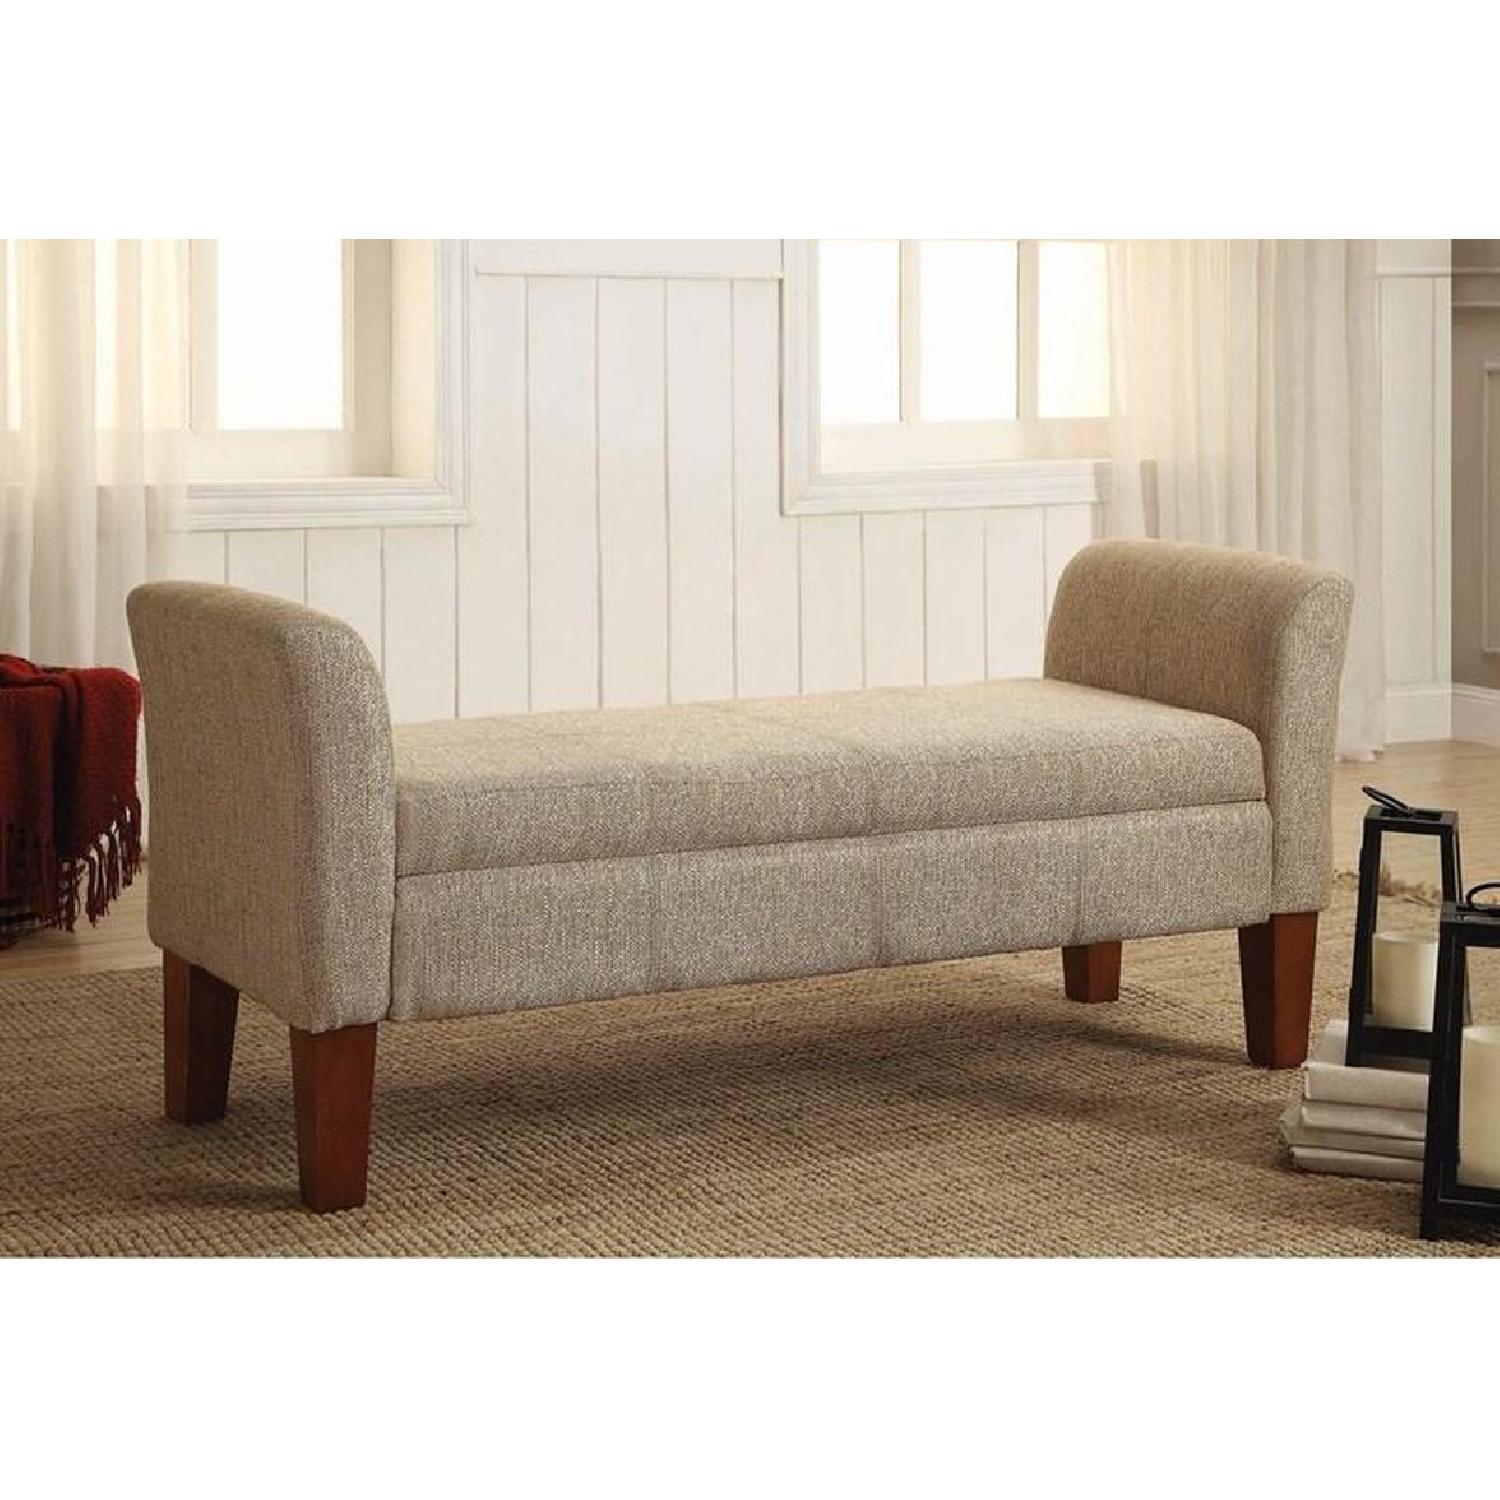 Storage Bench Upholstered In Tan Woven Fabric - image-4